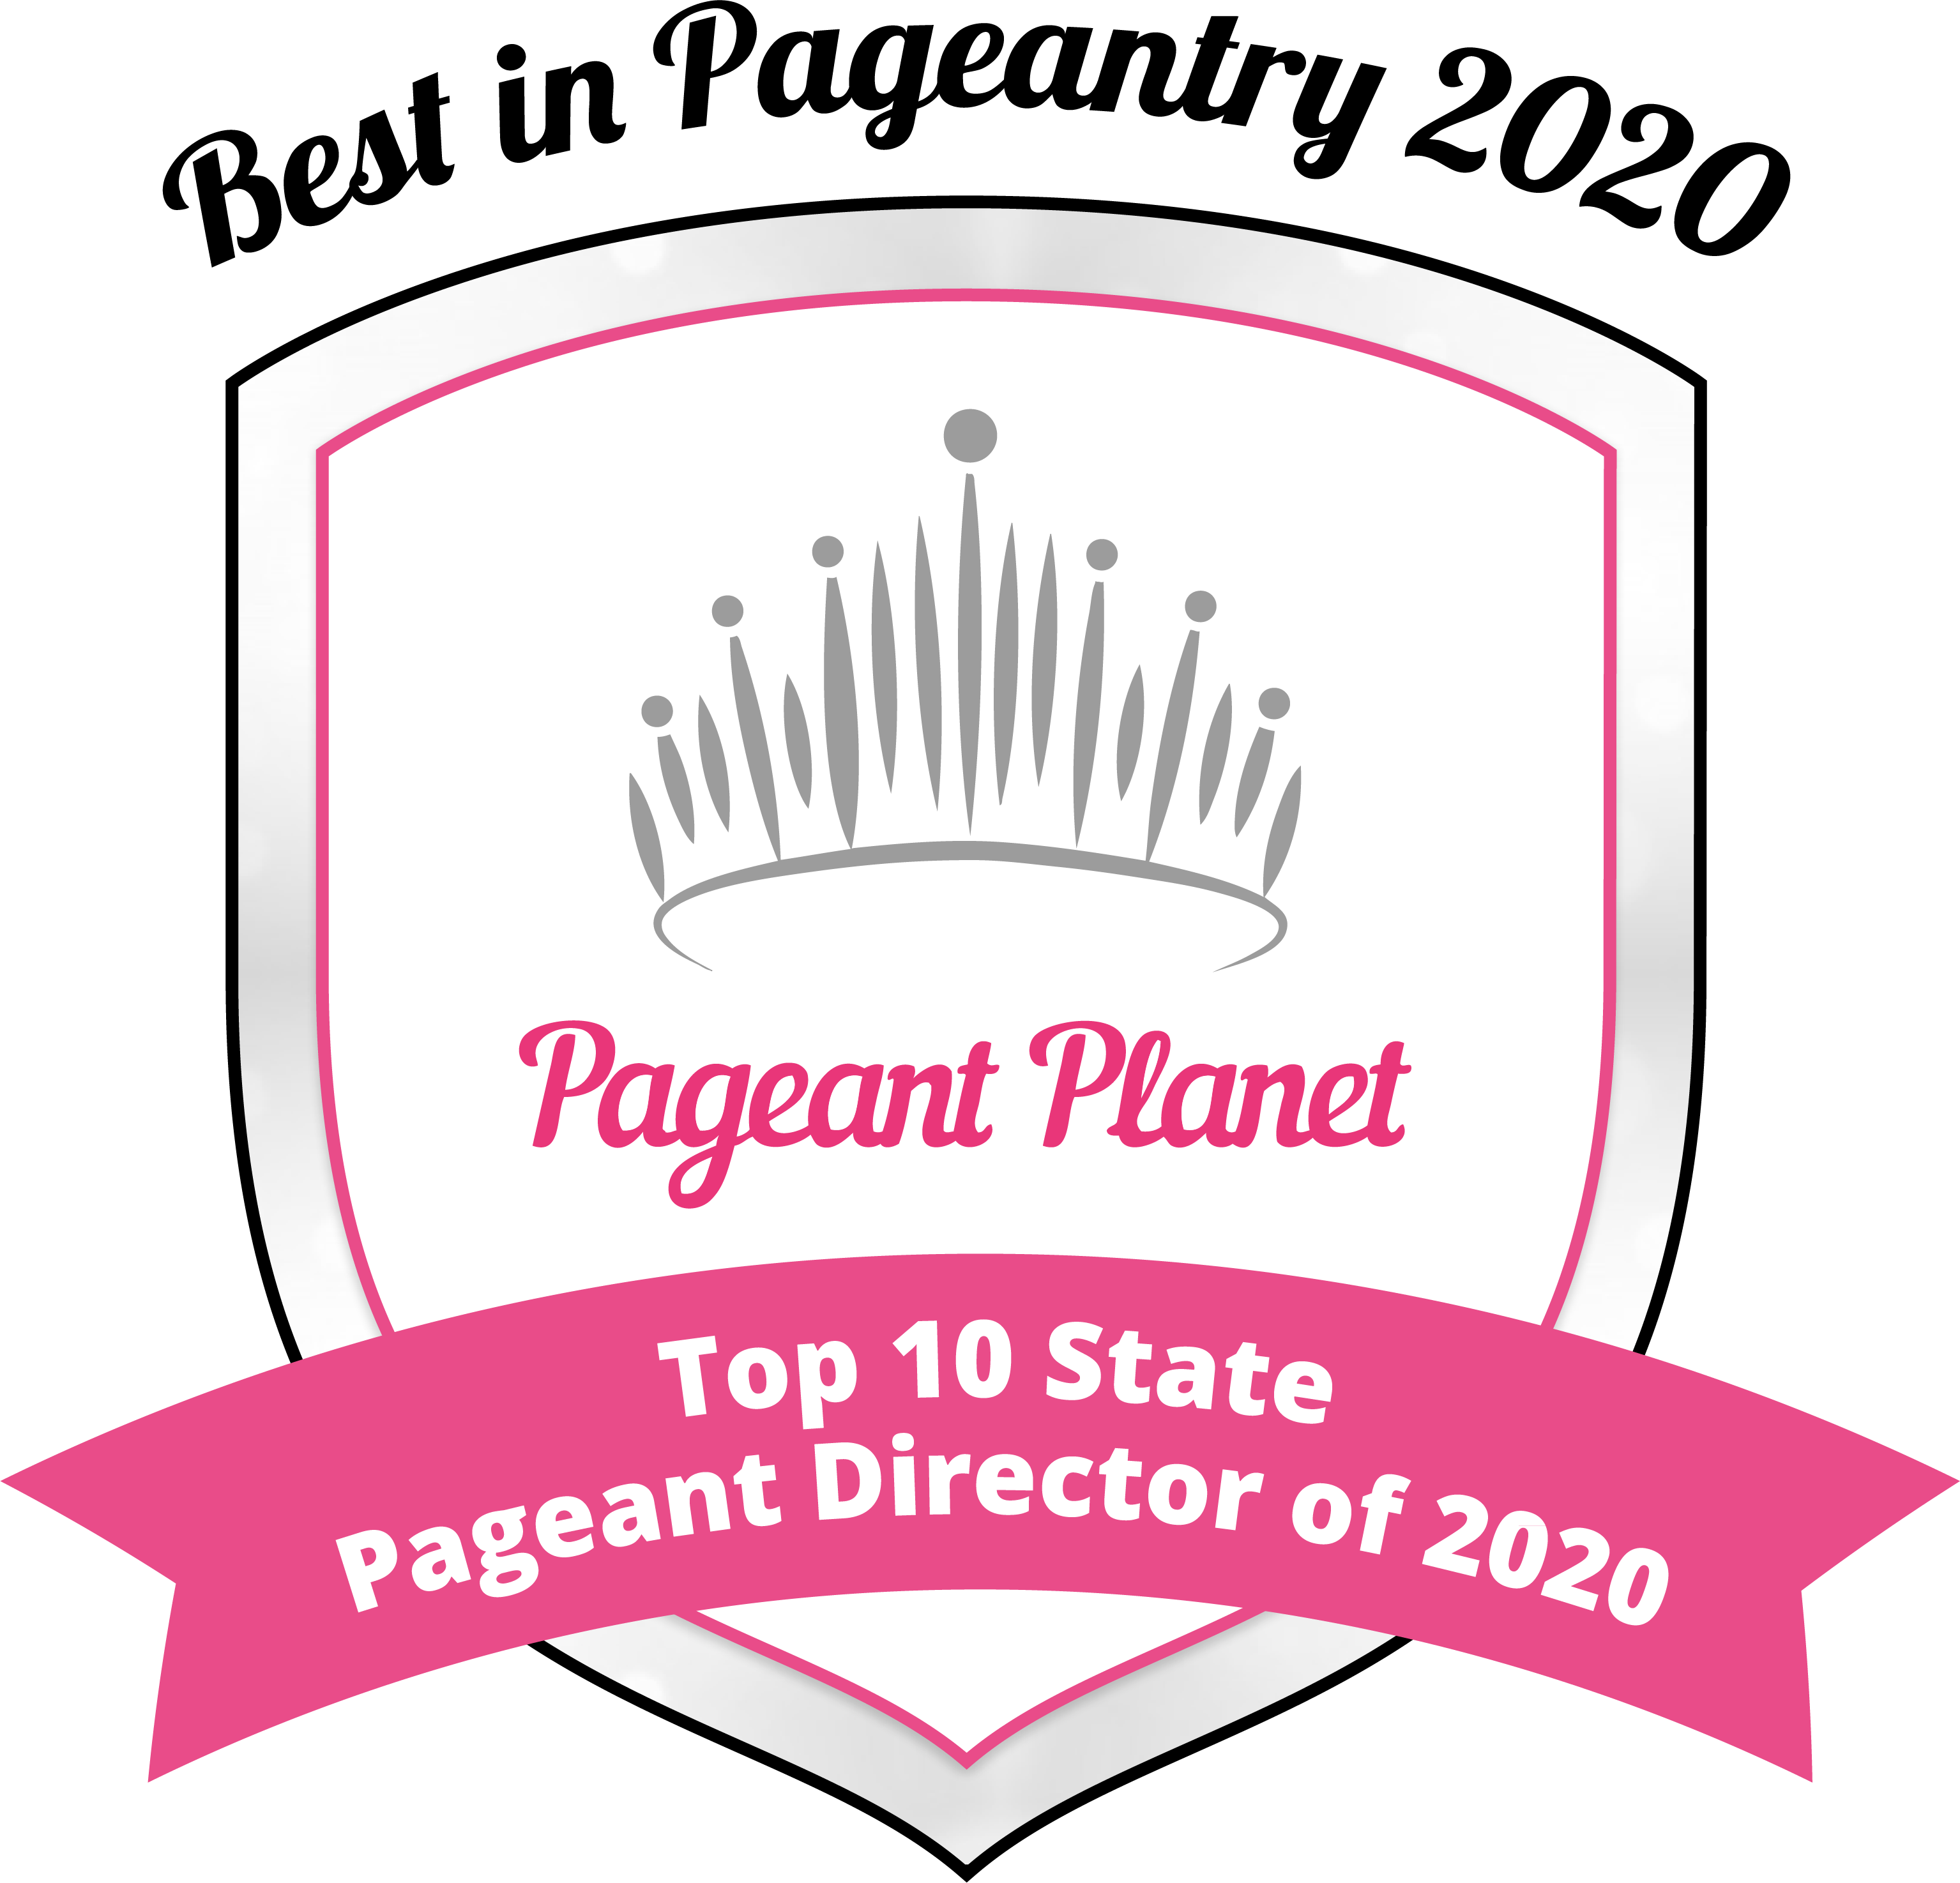 Top 10 State Pageant Director of 2020